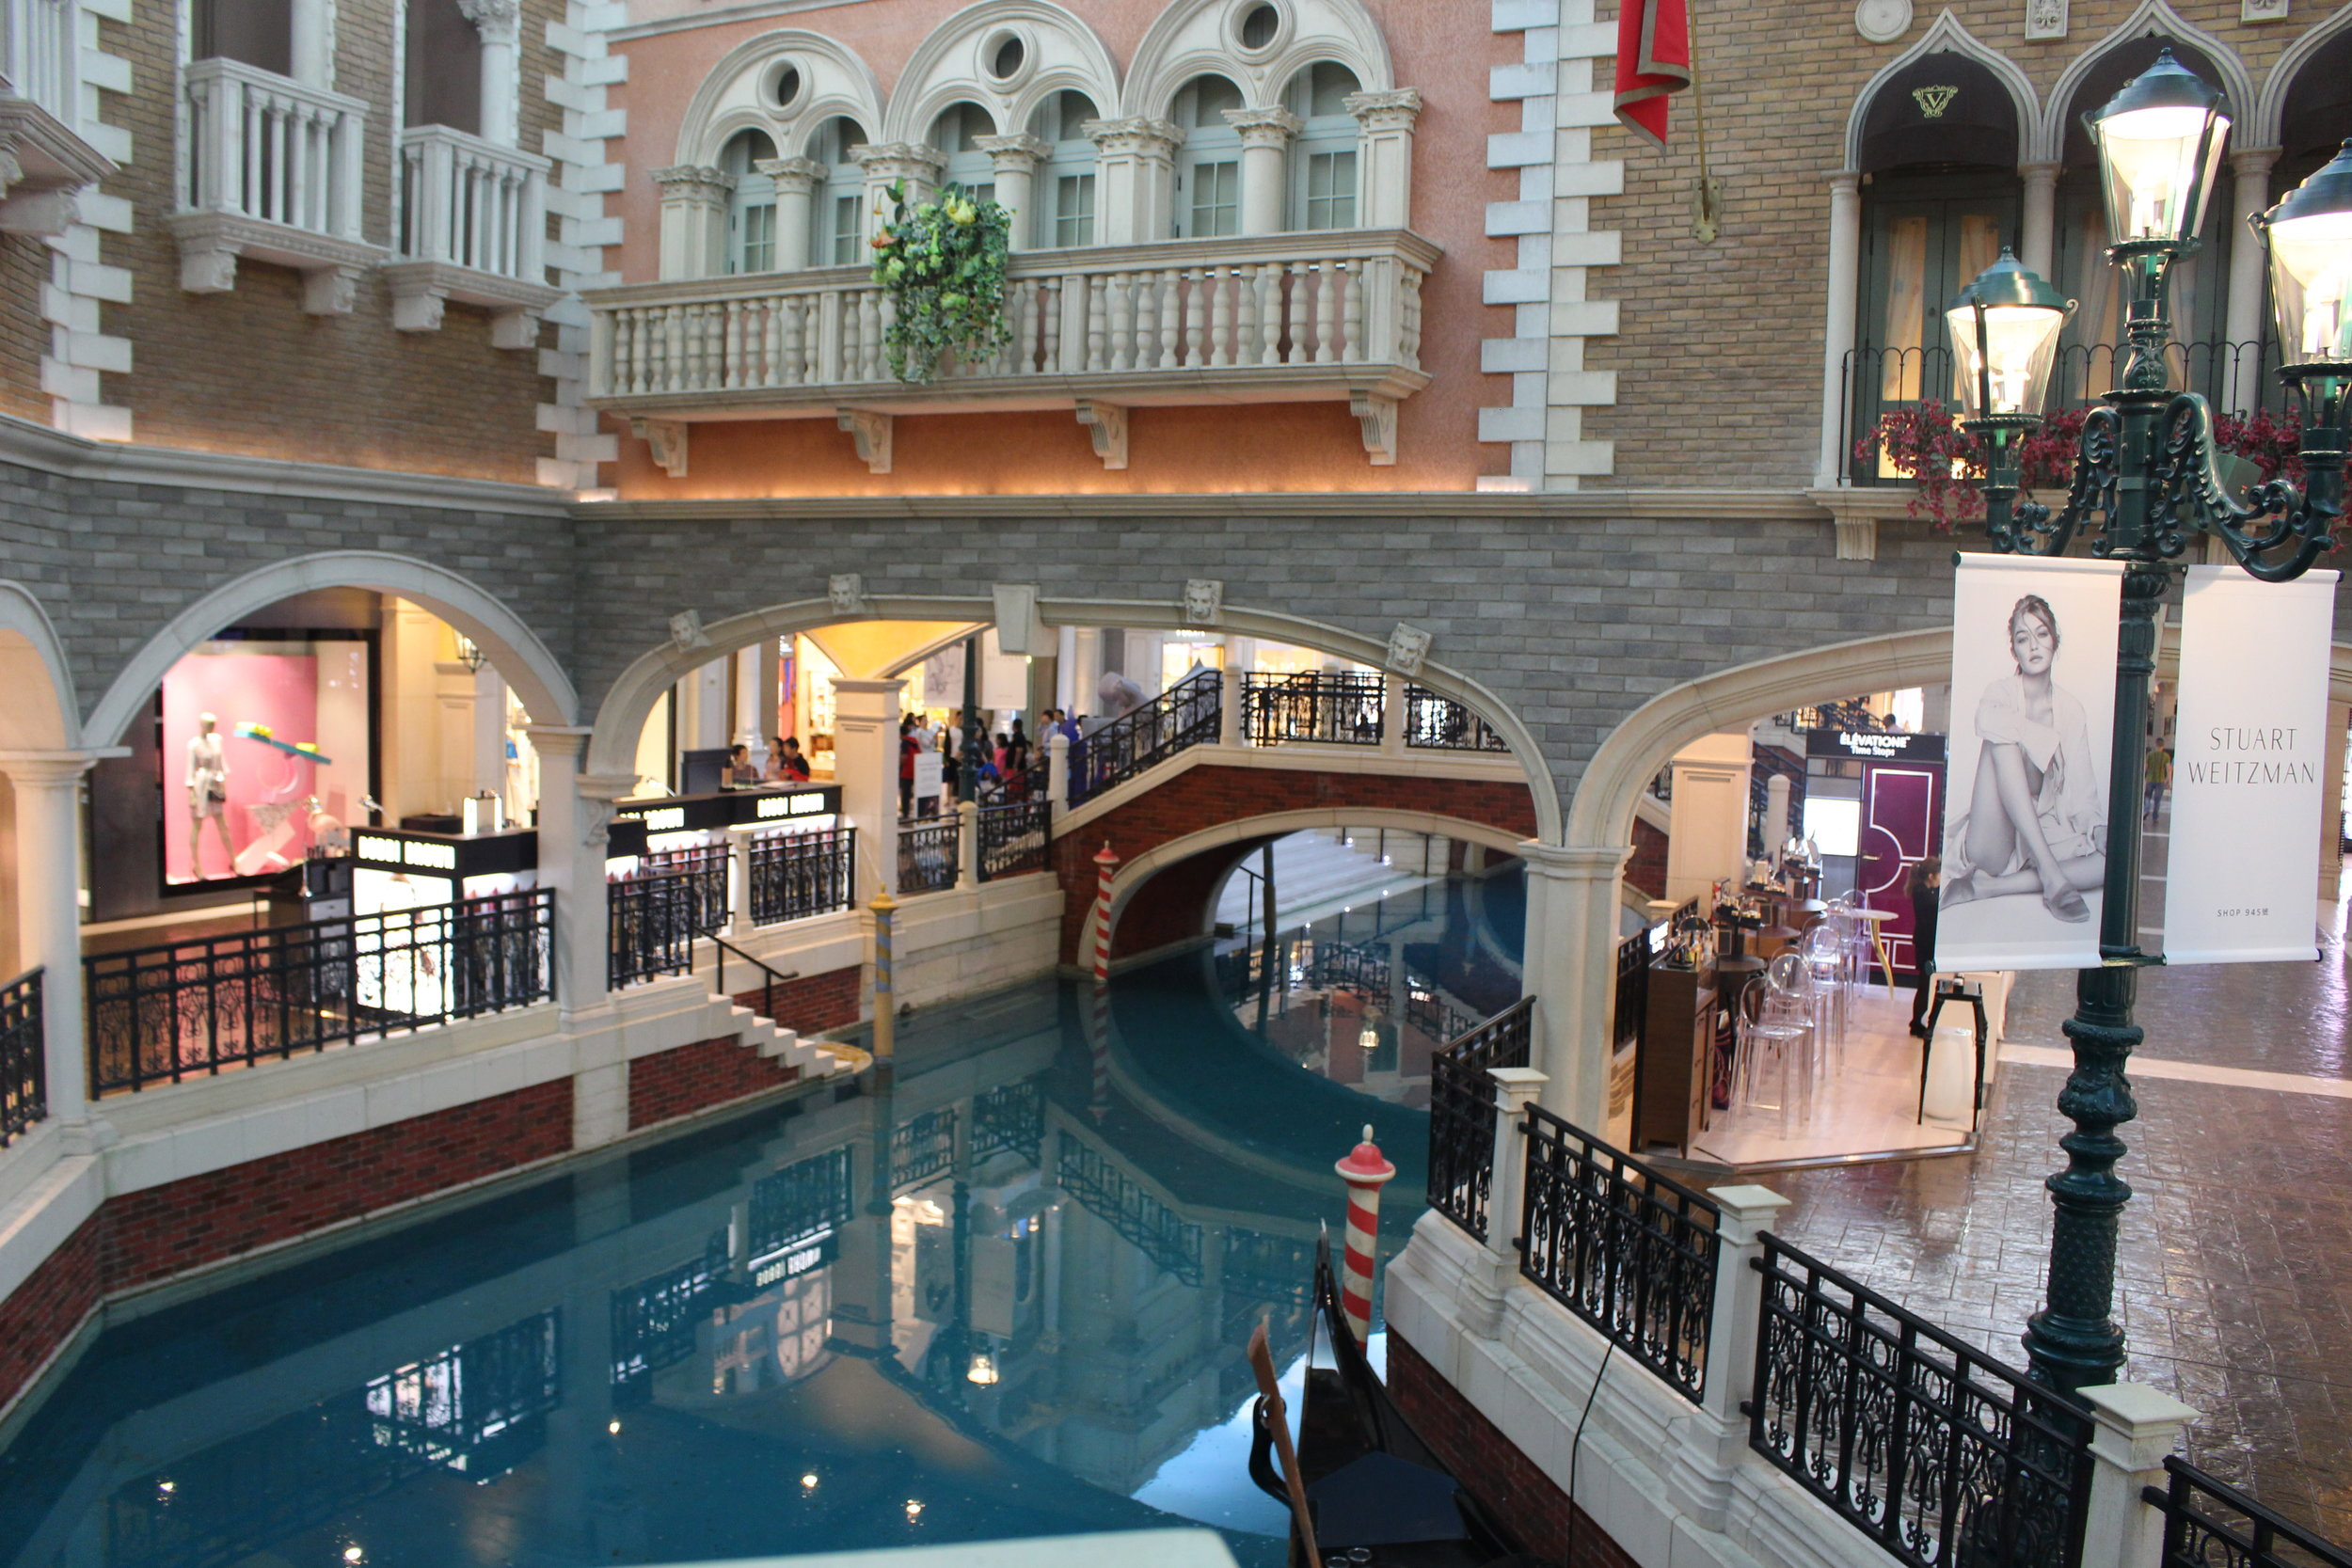 Exploring the largest casino in the world, The Venetian